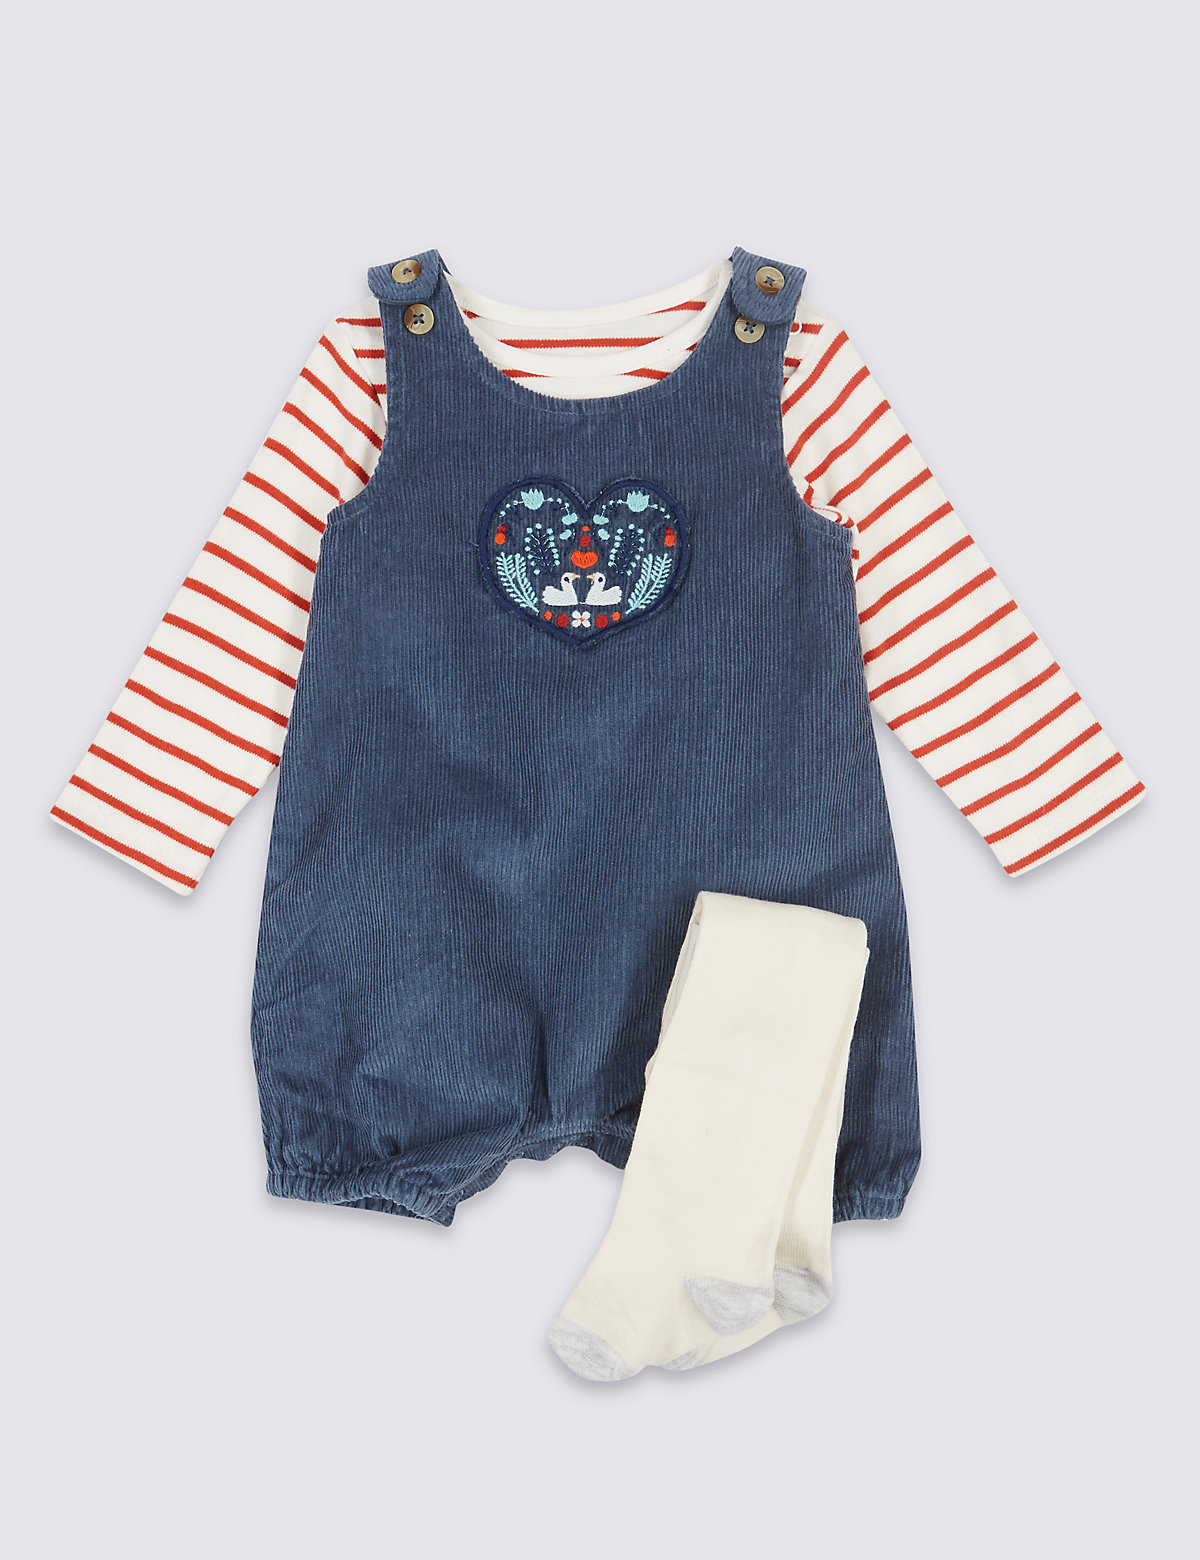 3 Piece Bib Short & Bodysuit with Tights Outfit